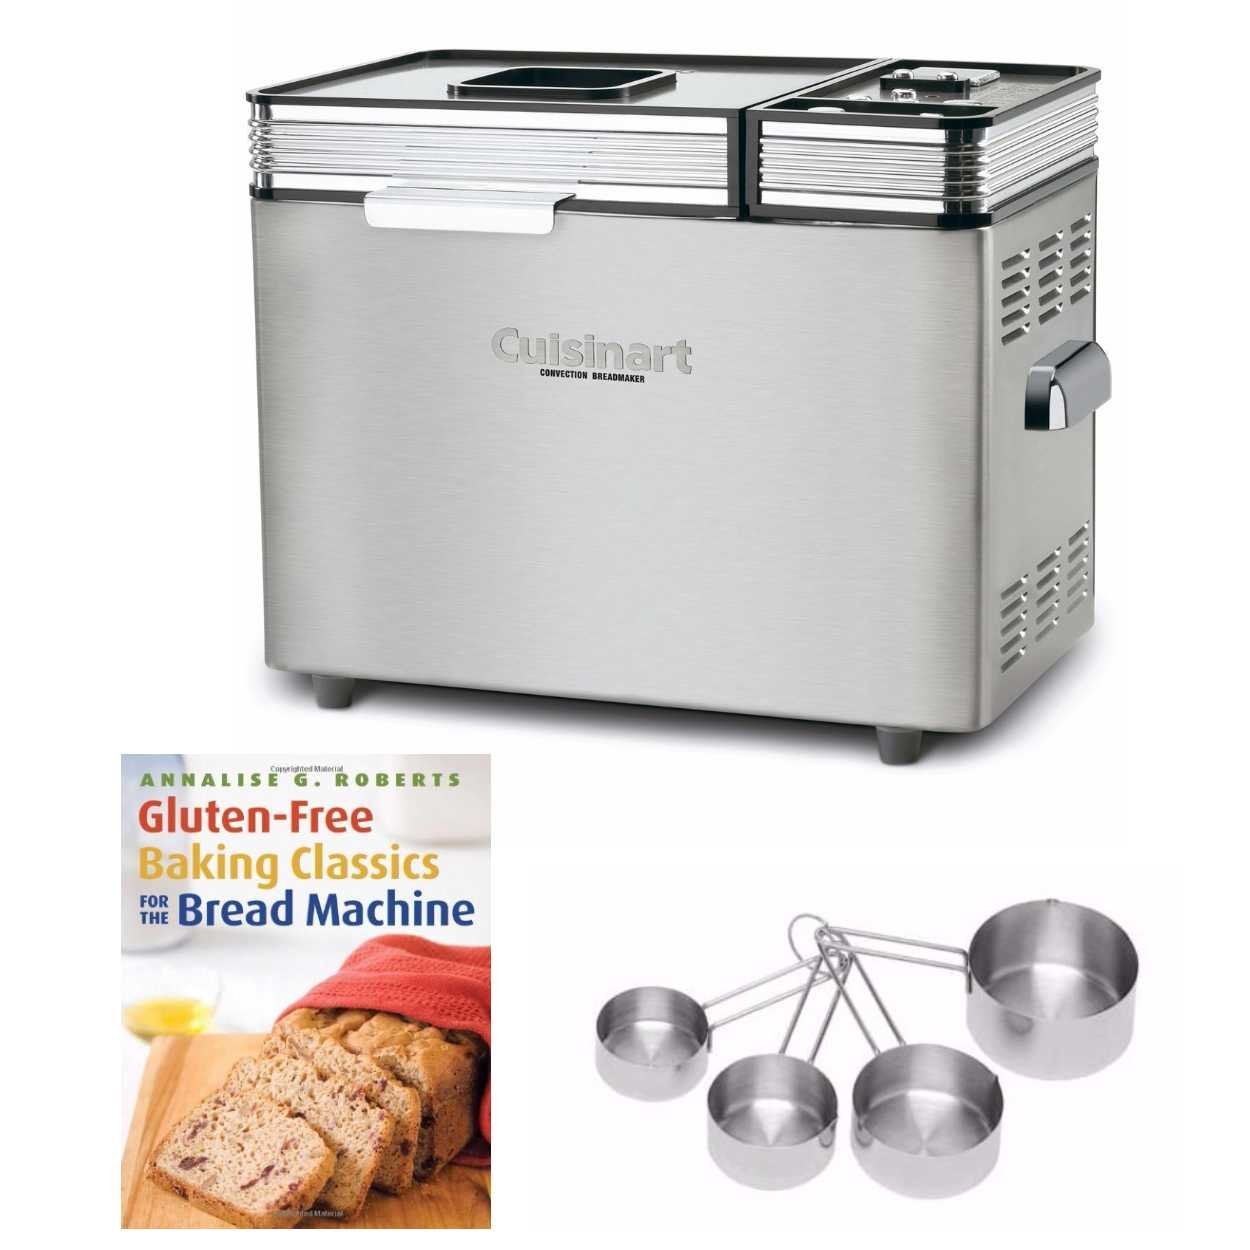 Cuisinart CBK-200 2-Lb Convection Bread Maker Includes Gluten-Free Bread Cookbook and Stainless Measuring Cup Set (Renewed)